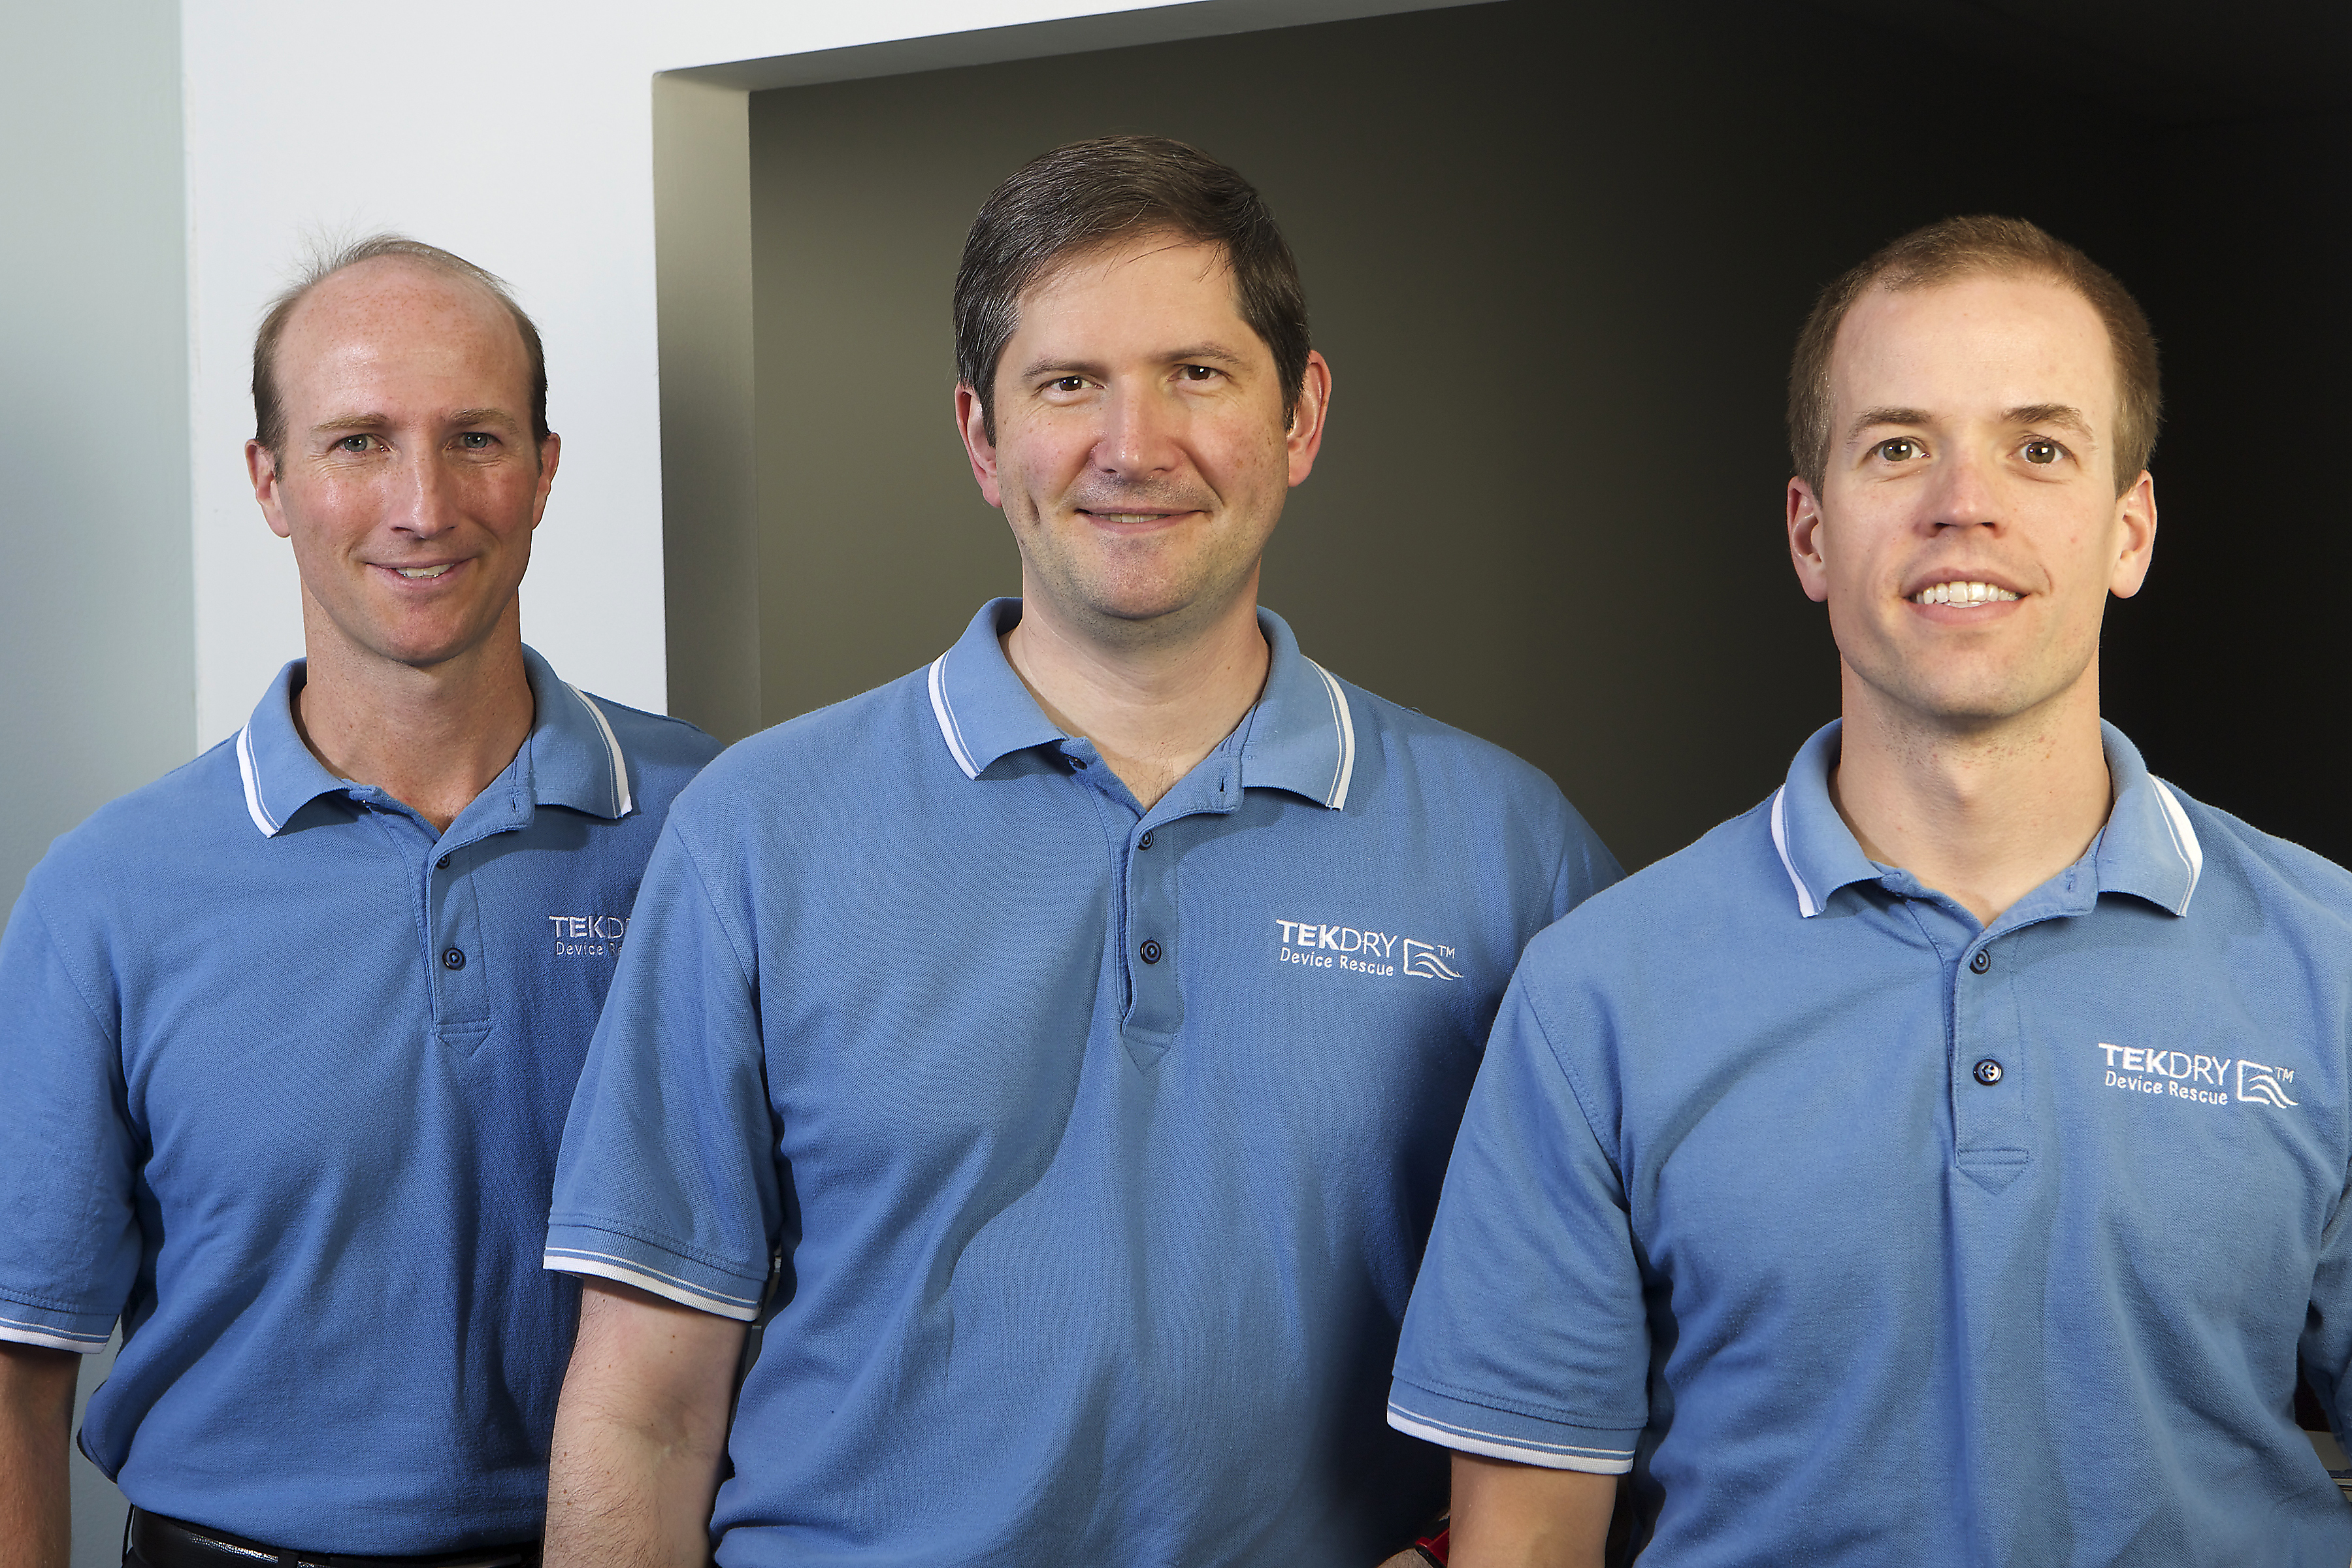 TekDry founders Craig Beinecke (left), Adam Cookson (center), Eric Jones (right) (Photo: Business Wire)